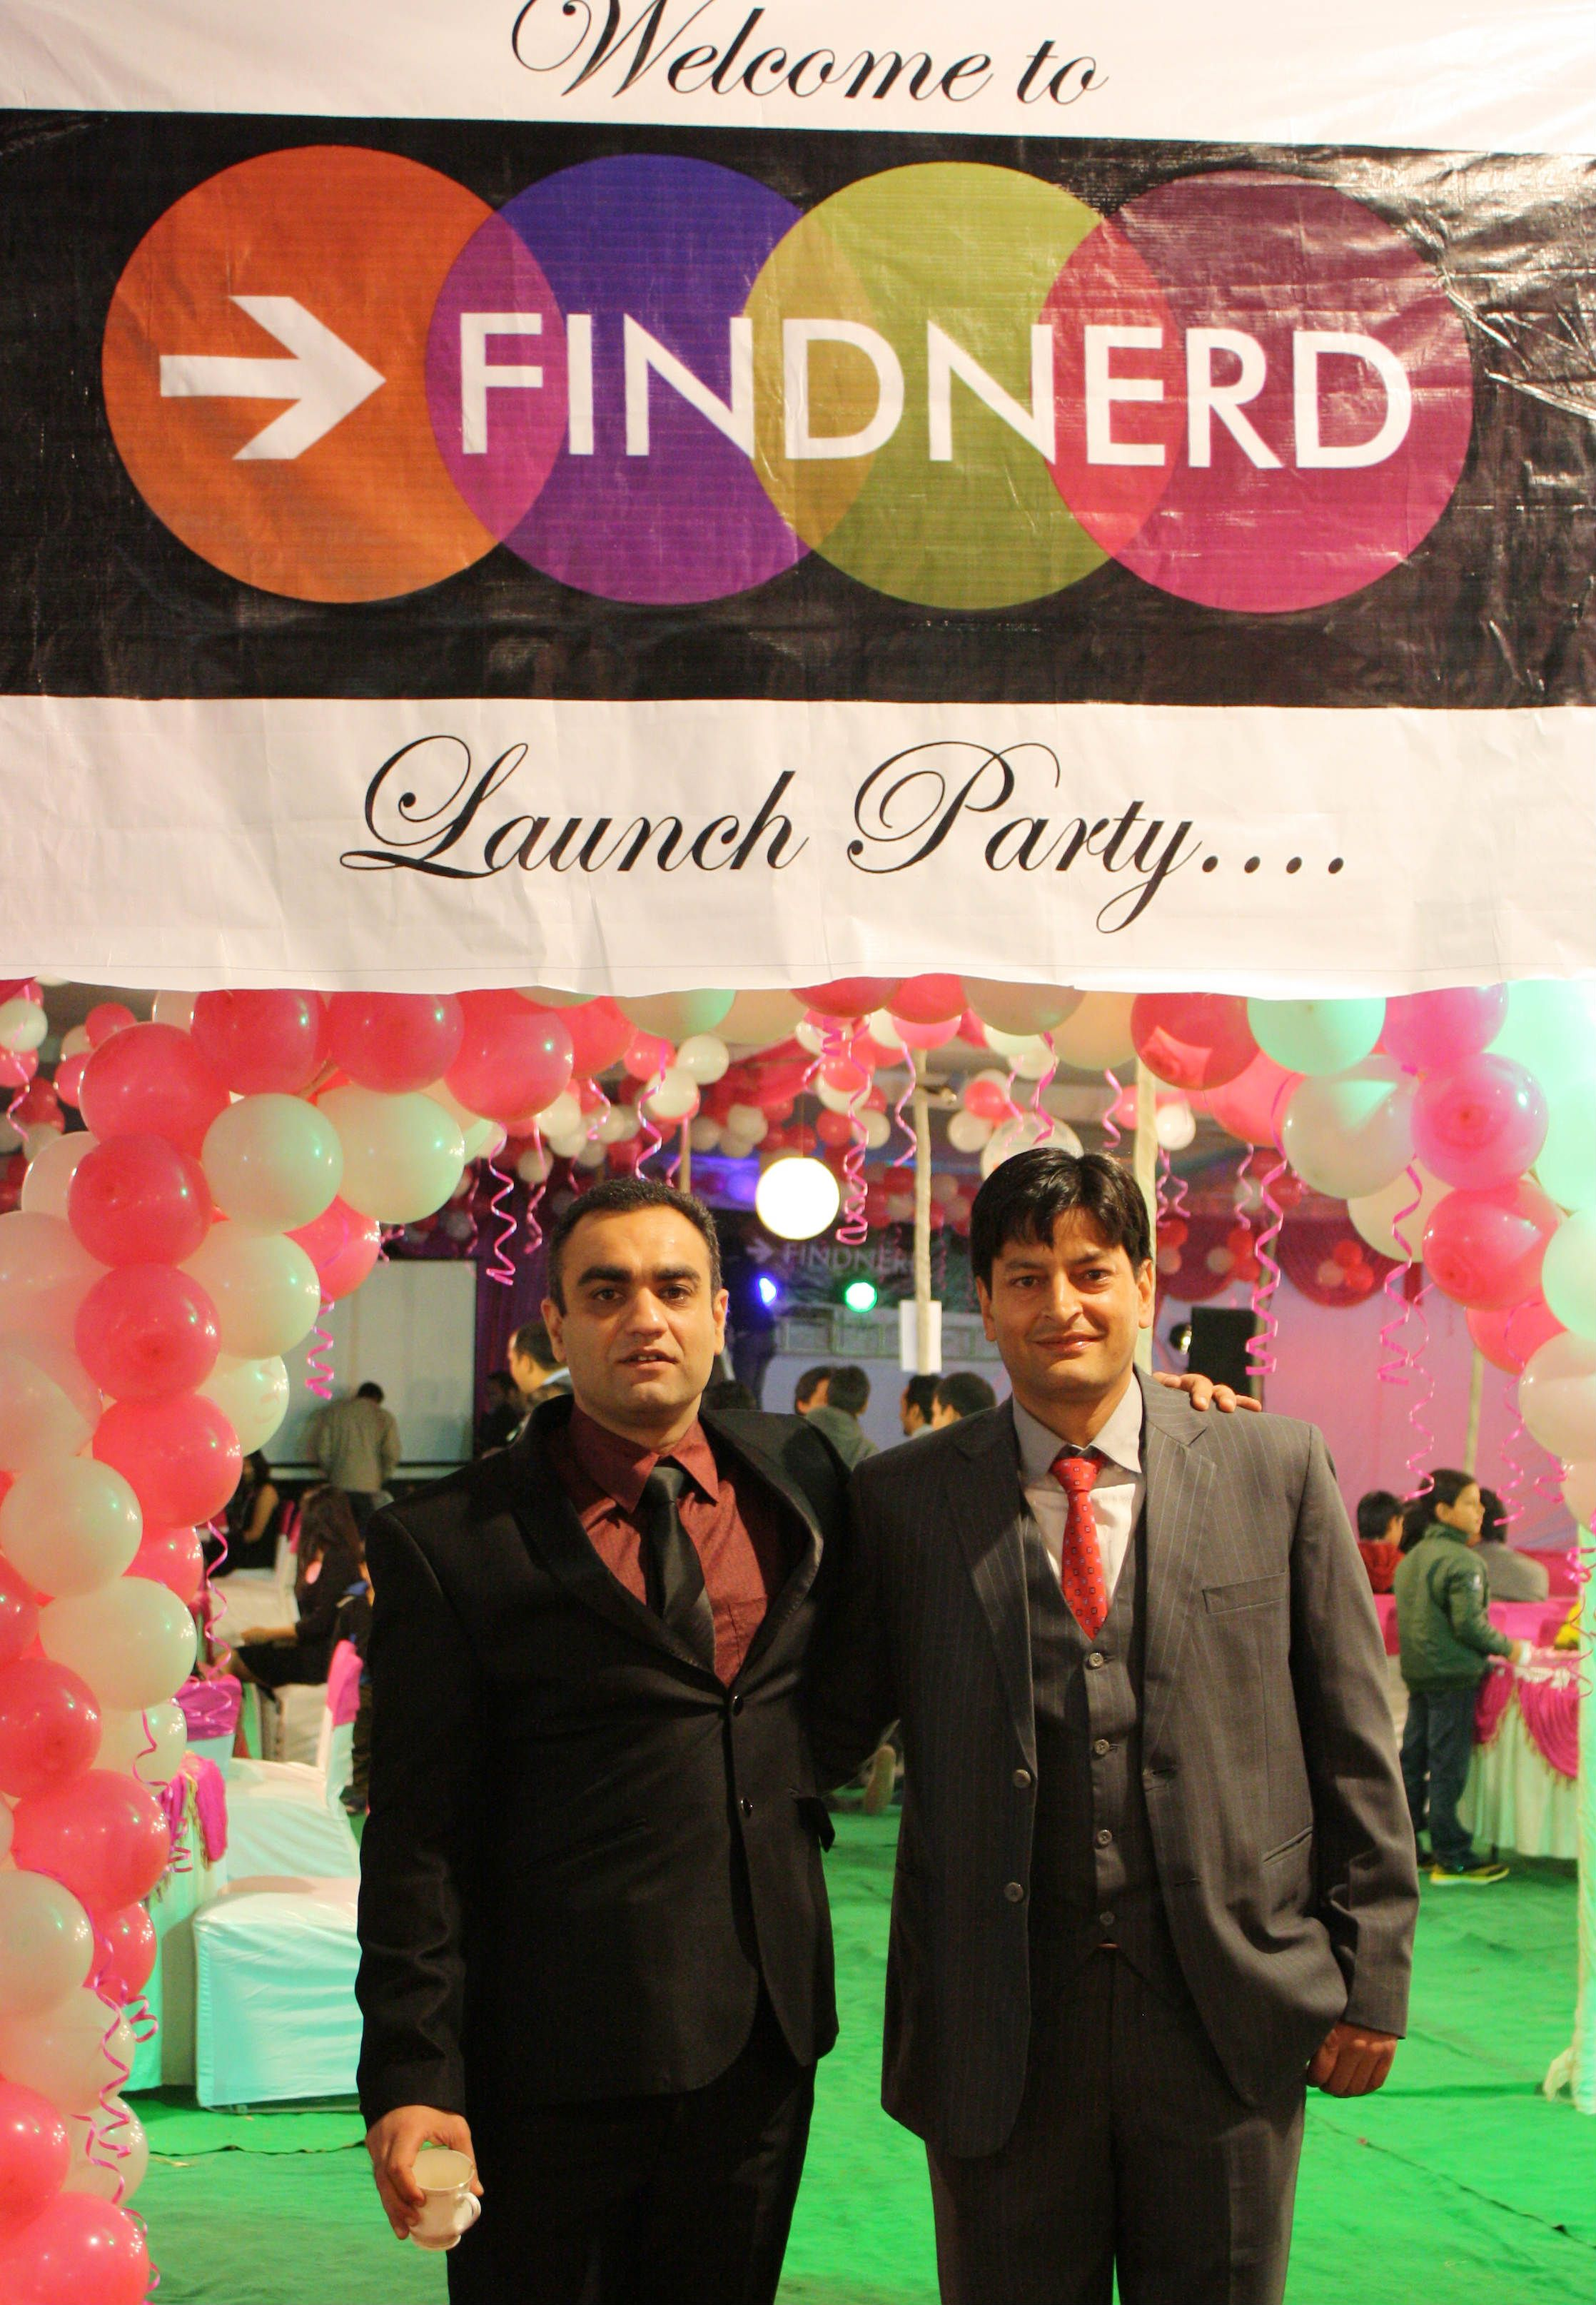 Company top officials at findnerd launch party www